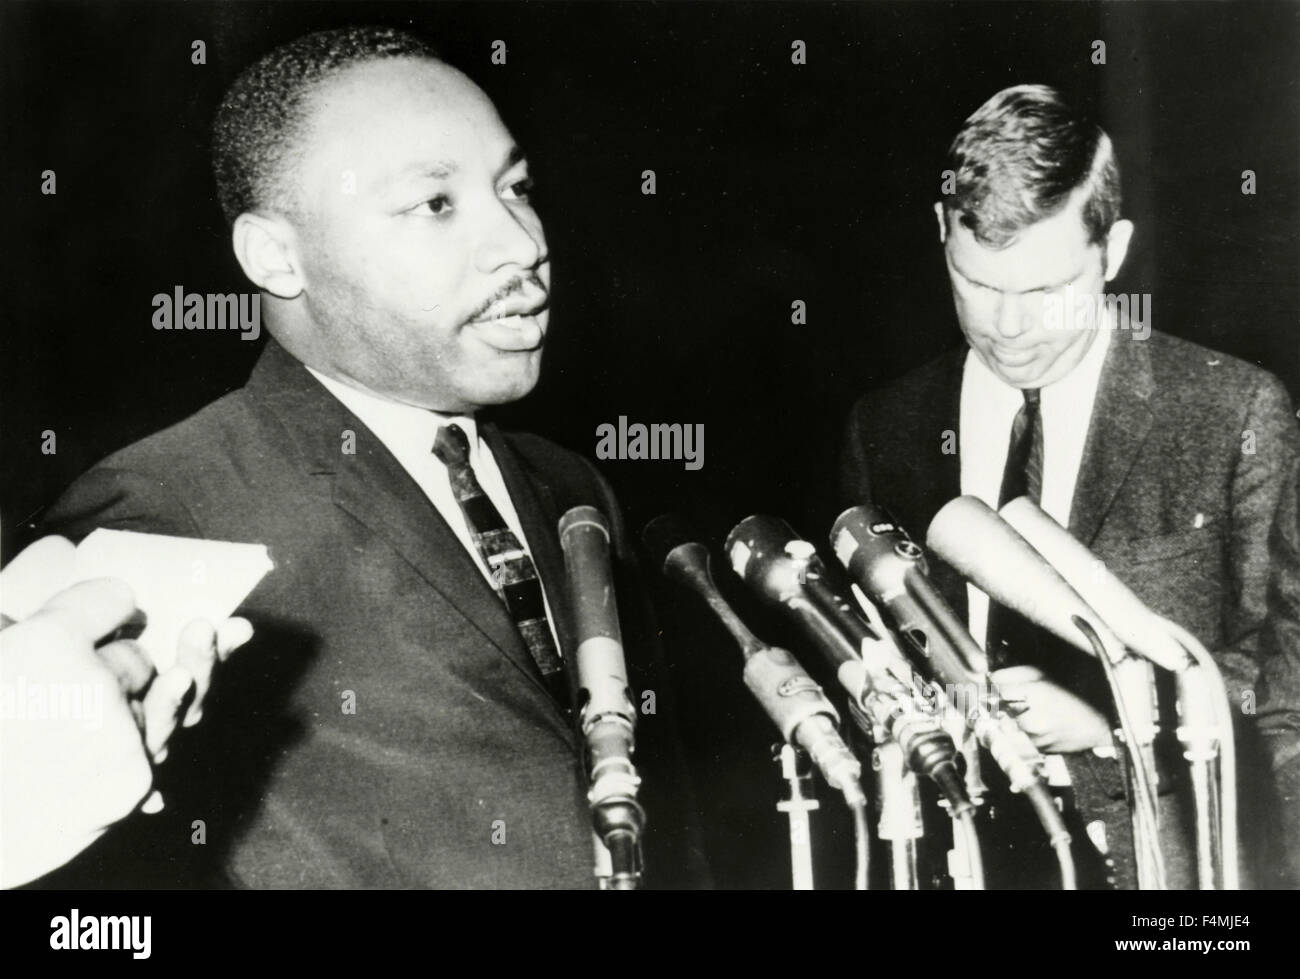 Martin Luther King, Human Rights Activist, USA - Stock Image